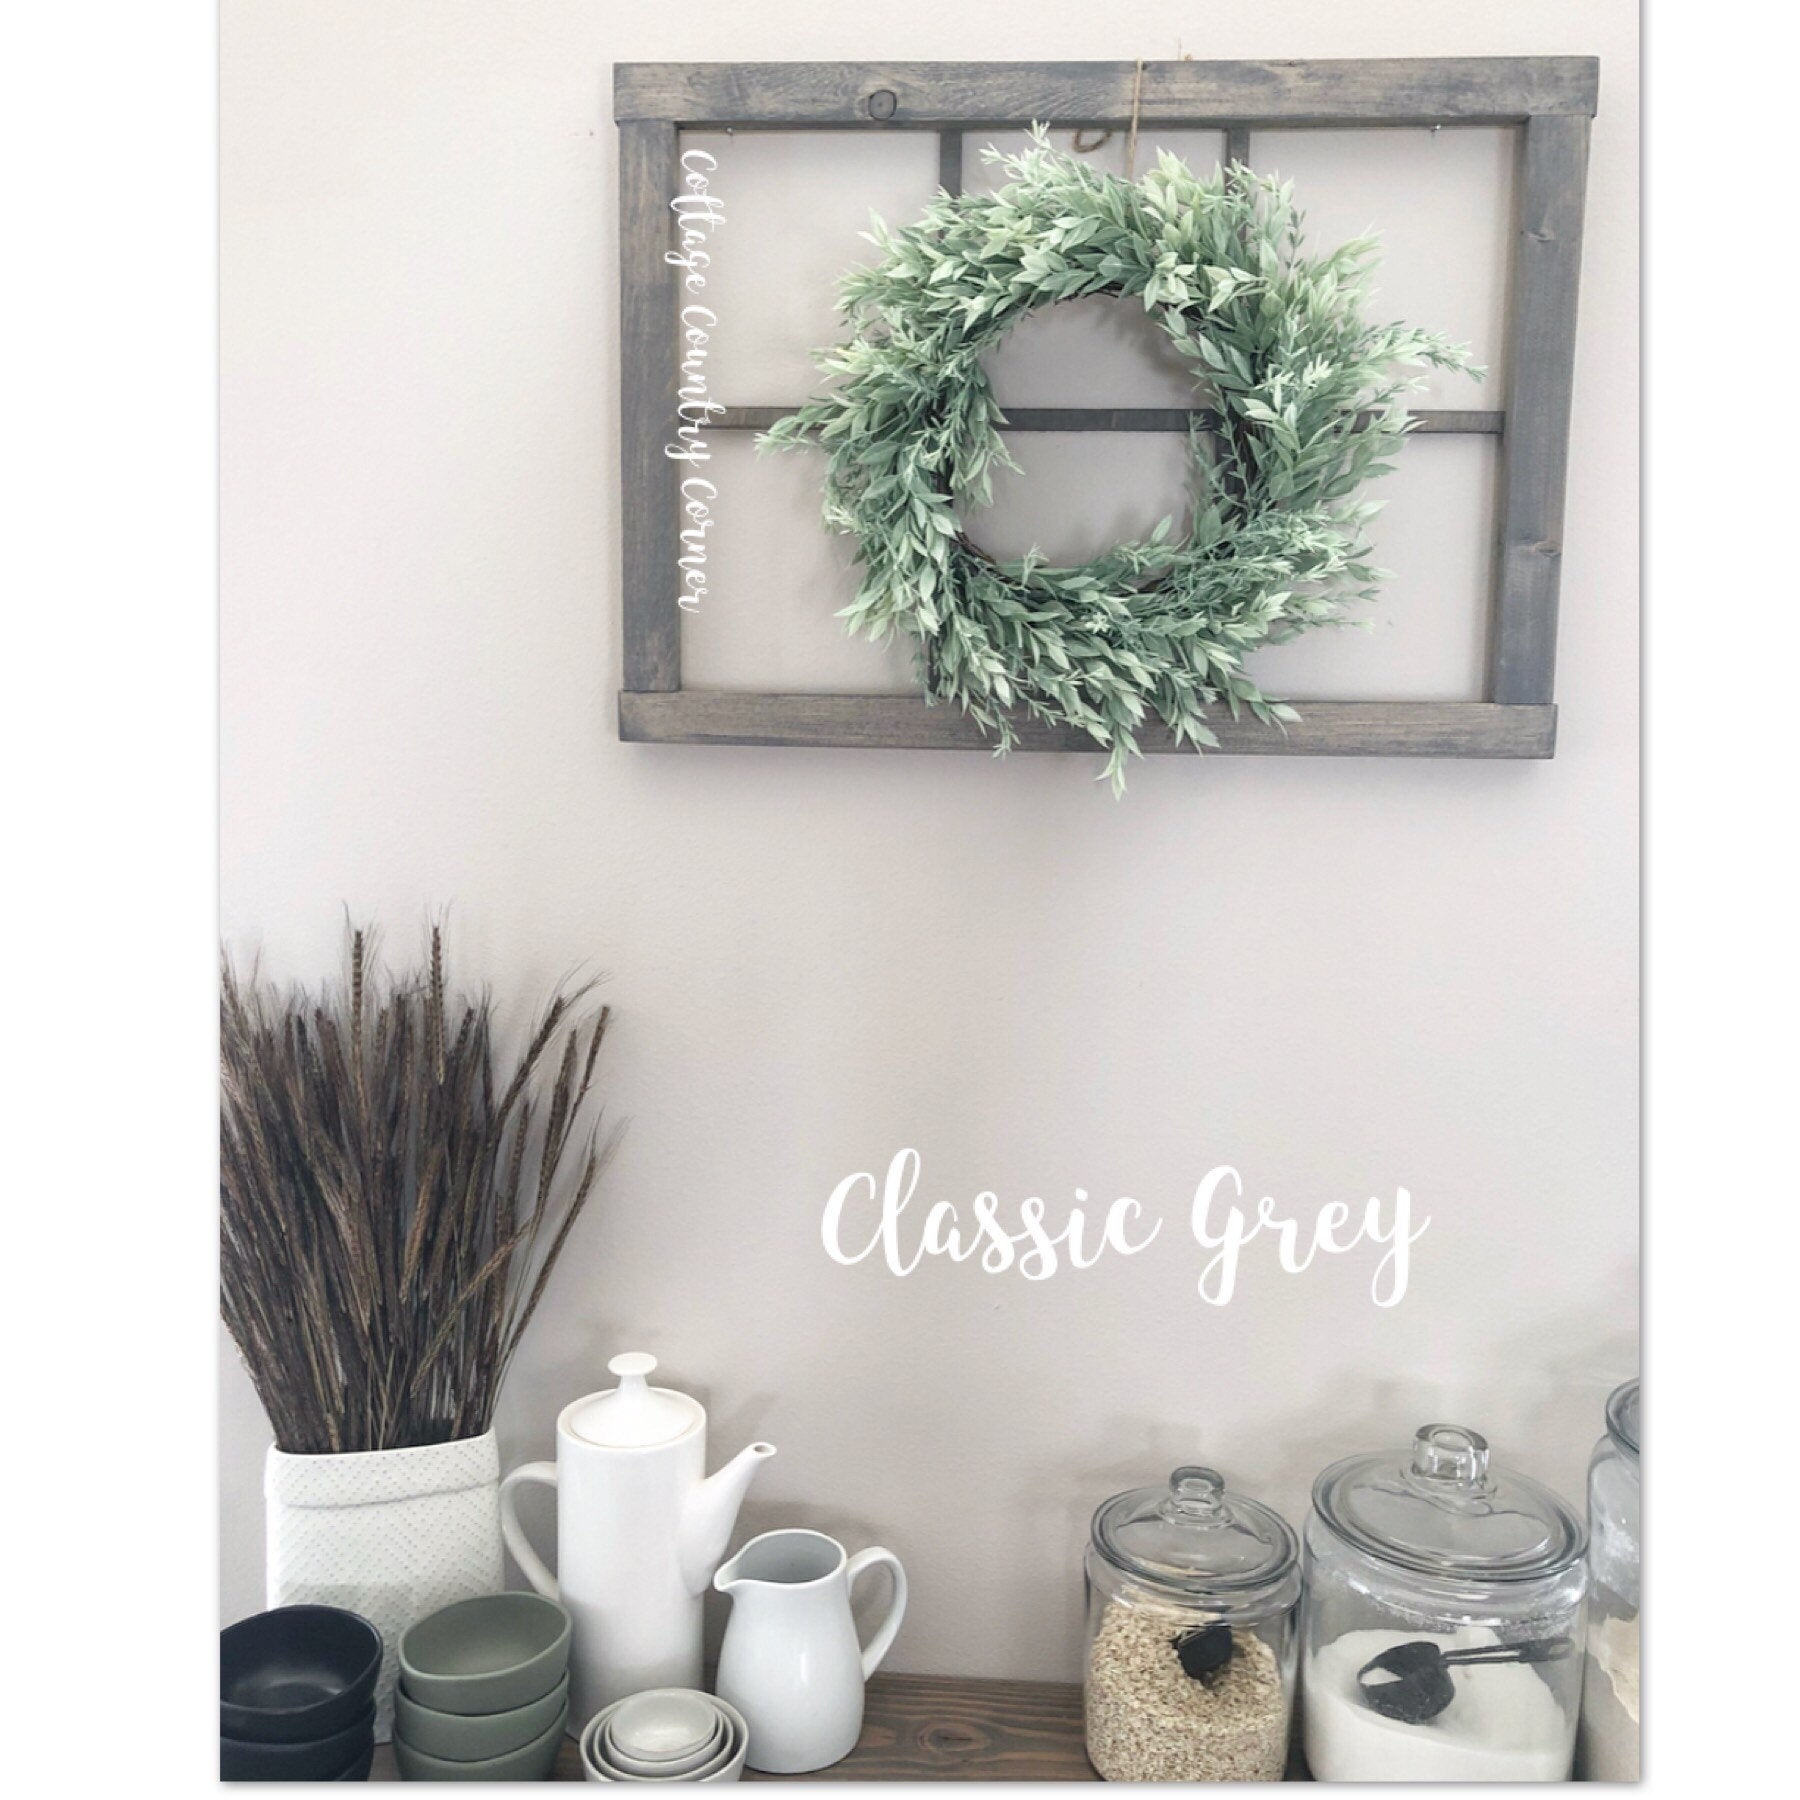 "Window Frame 25"" x 18"" - Window Frame Wall Decor - Farmhouse Decor - Modern Farmhouse Decor - 6 Pane Faux Window Frame - Rustic Window"